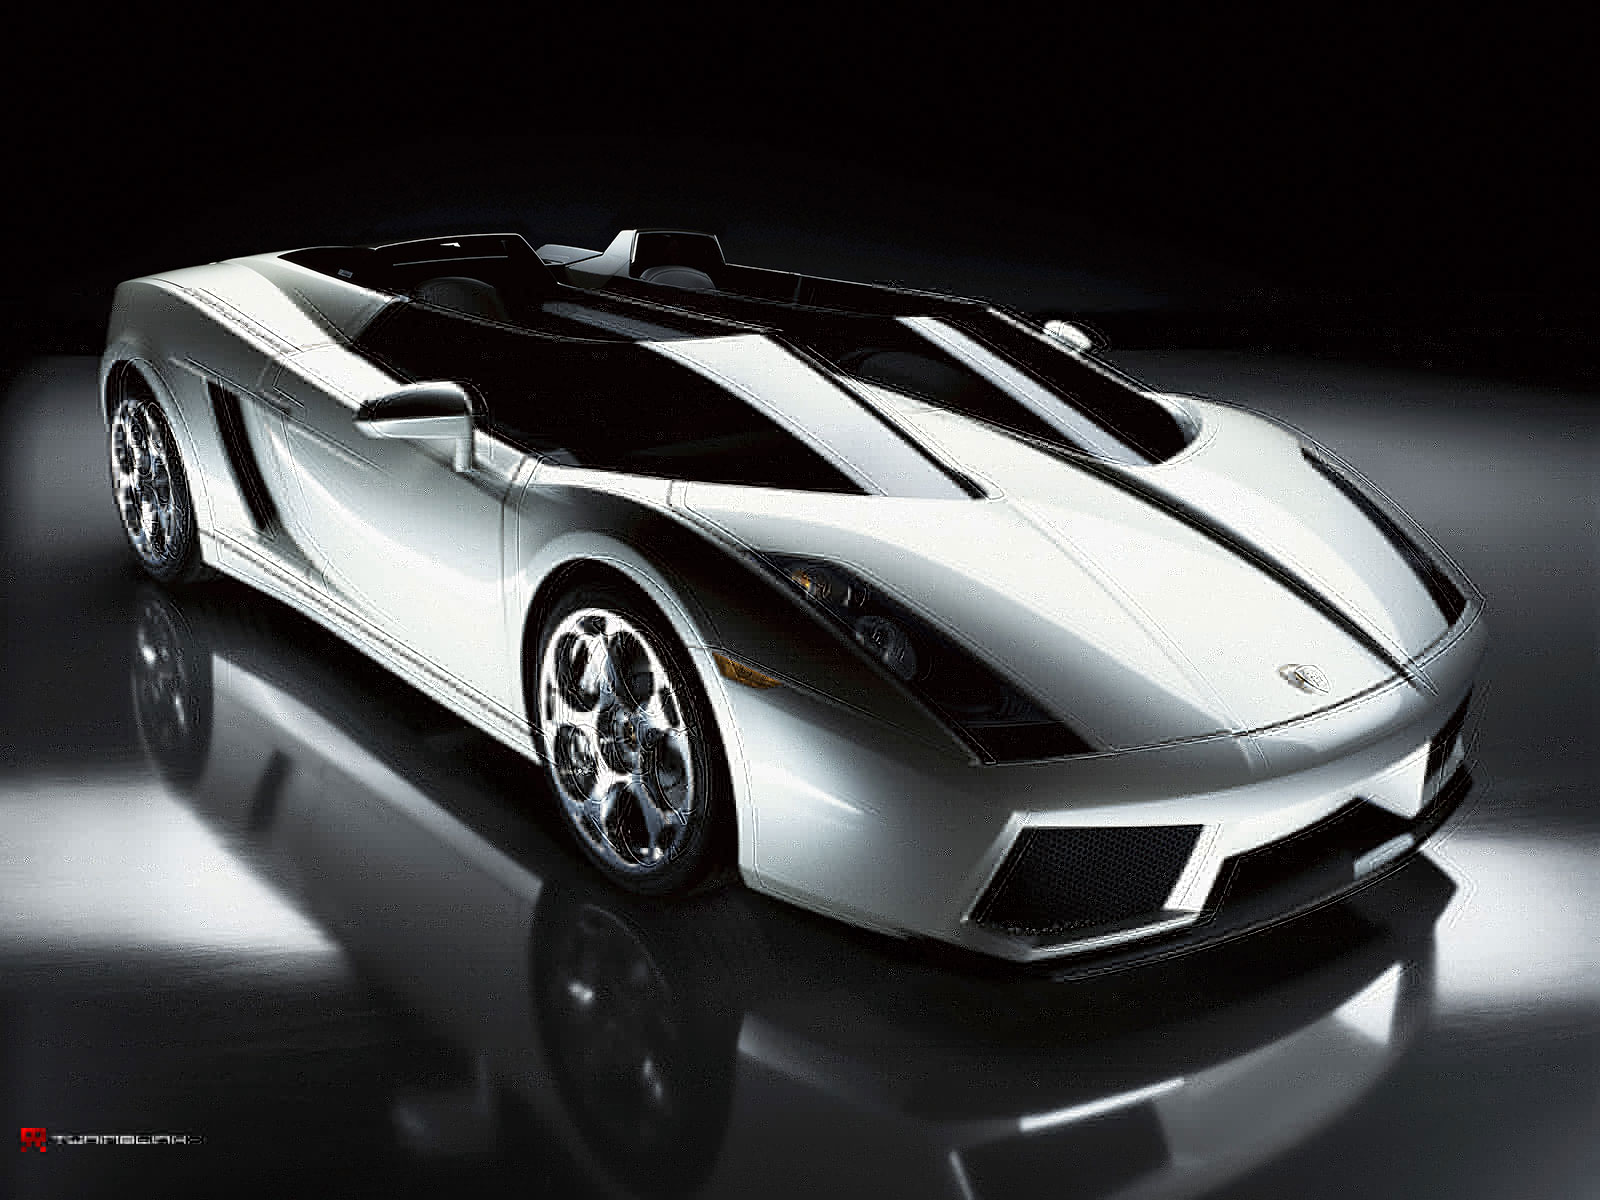 The Best Cars From Lamborghini